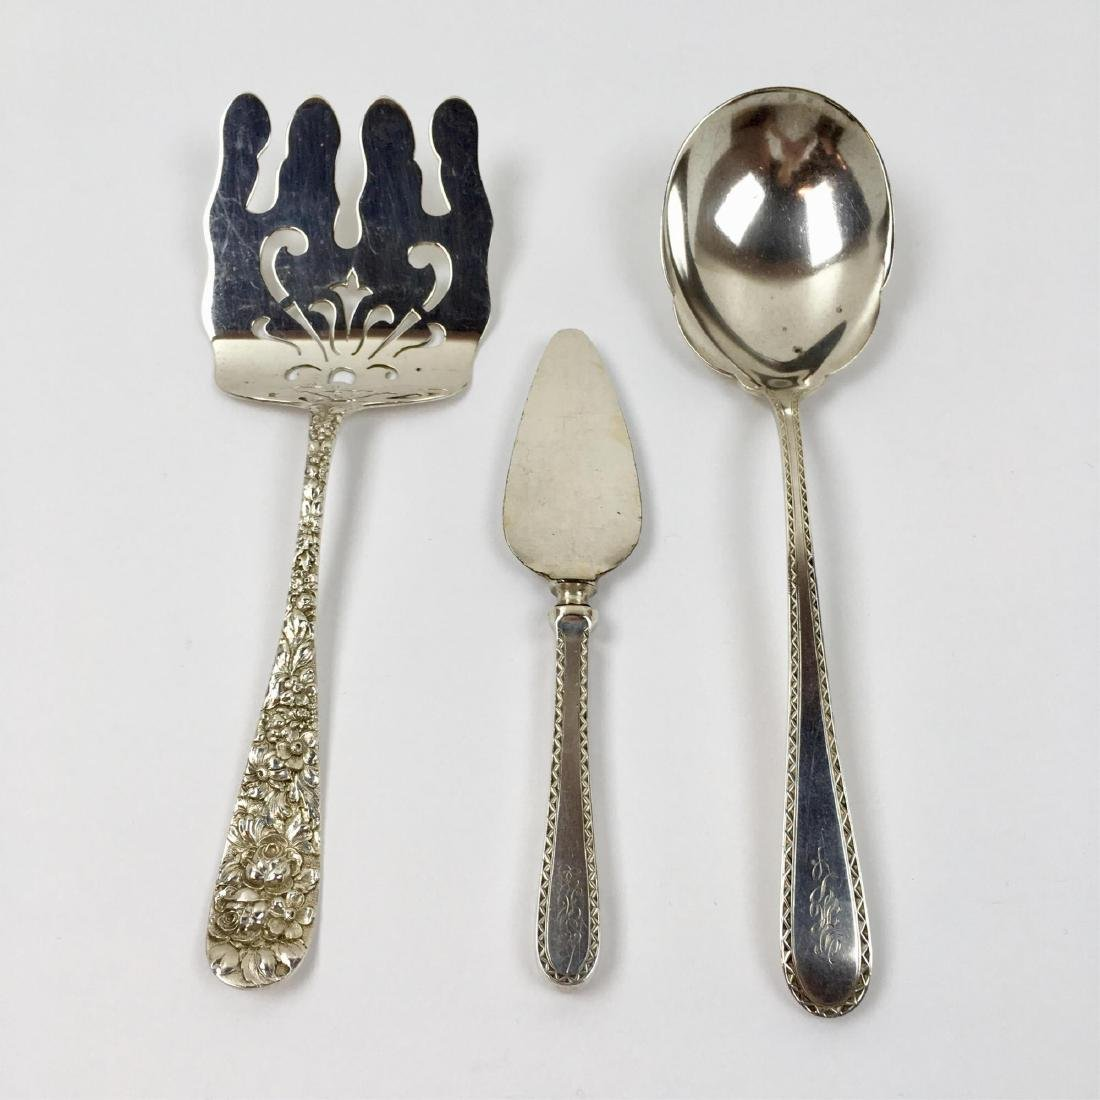 3 PCS OF STERLING SILVER FLATWARE